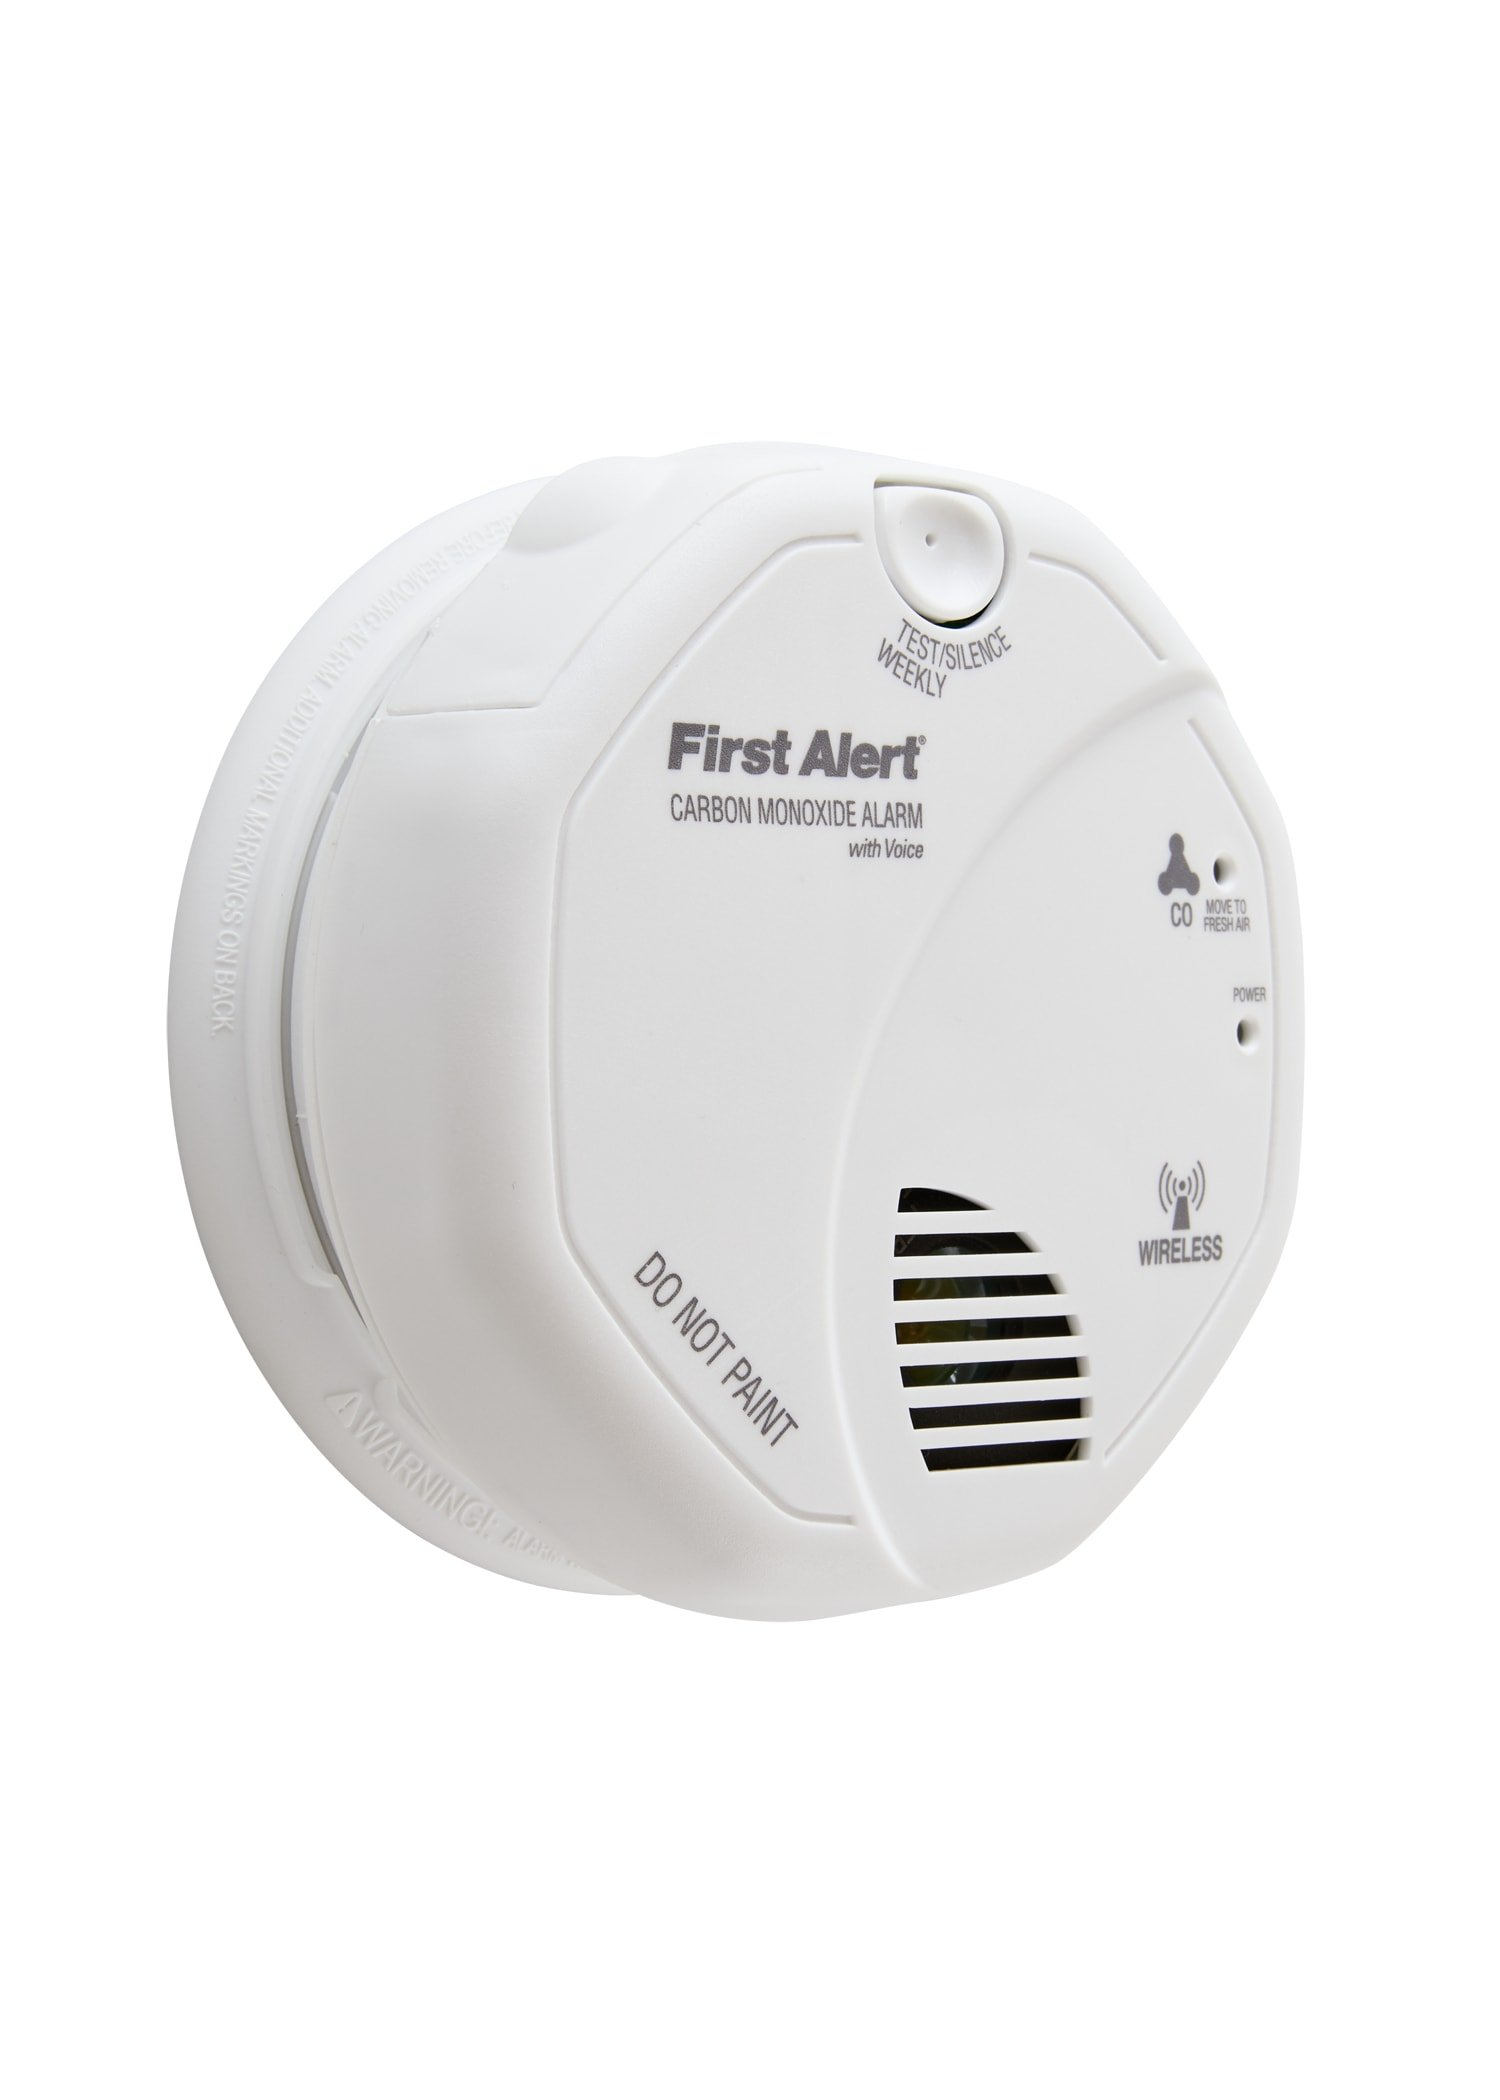 First Alert CO511B Wireless Interconnected Carbon Monoxide Alarm with Voice and Location by First Alert